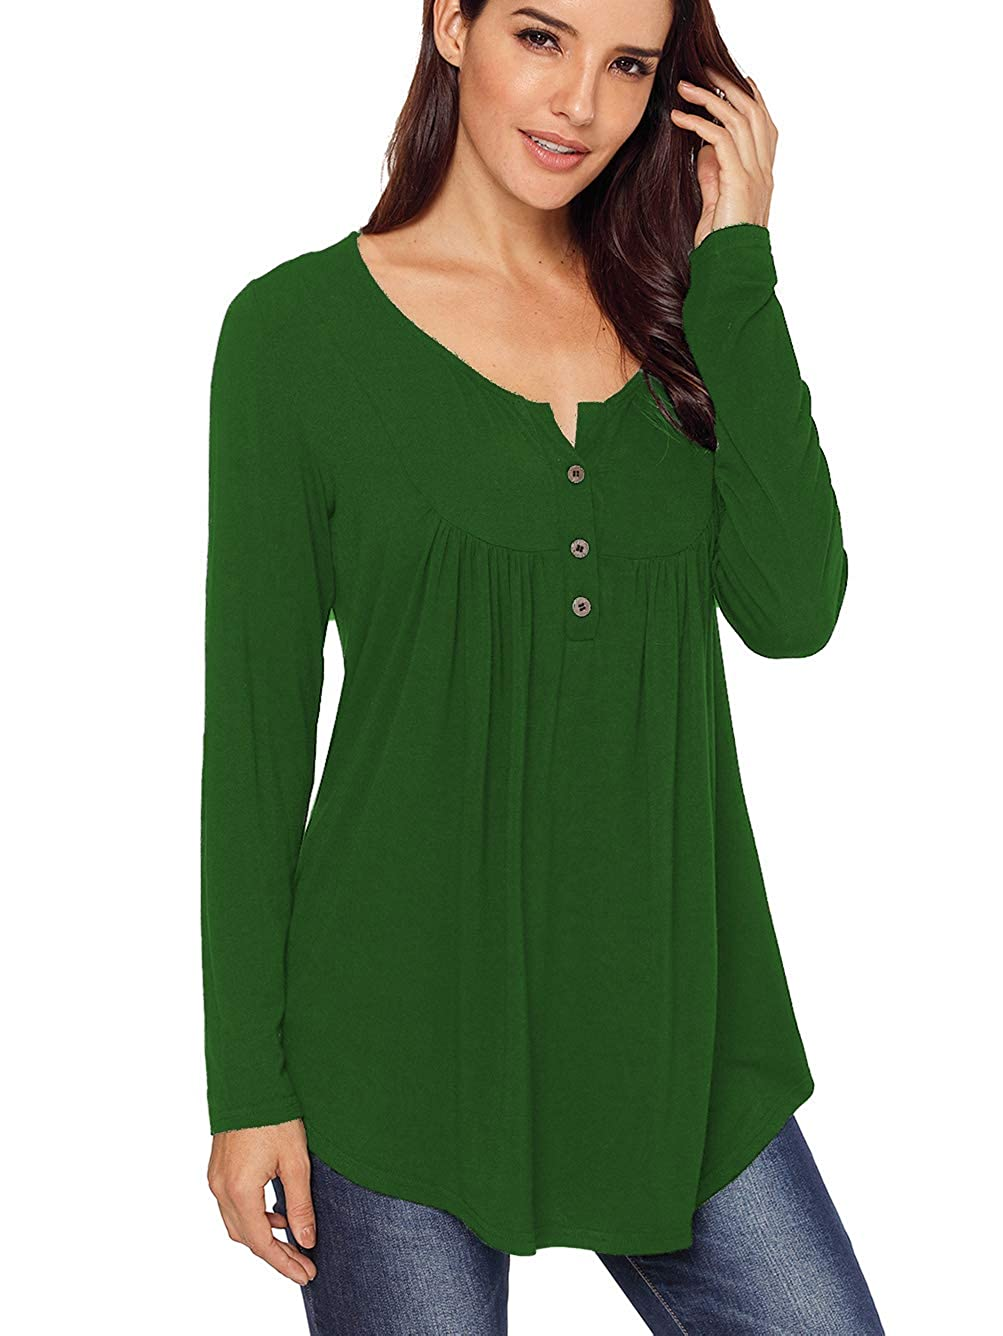 2 Green Famulily Women's Flowy Tank Tops Summer Sleeveless Loose Fit Pleated Tunic Shirts